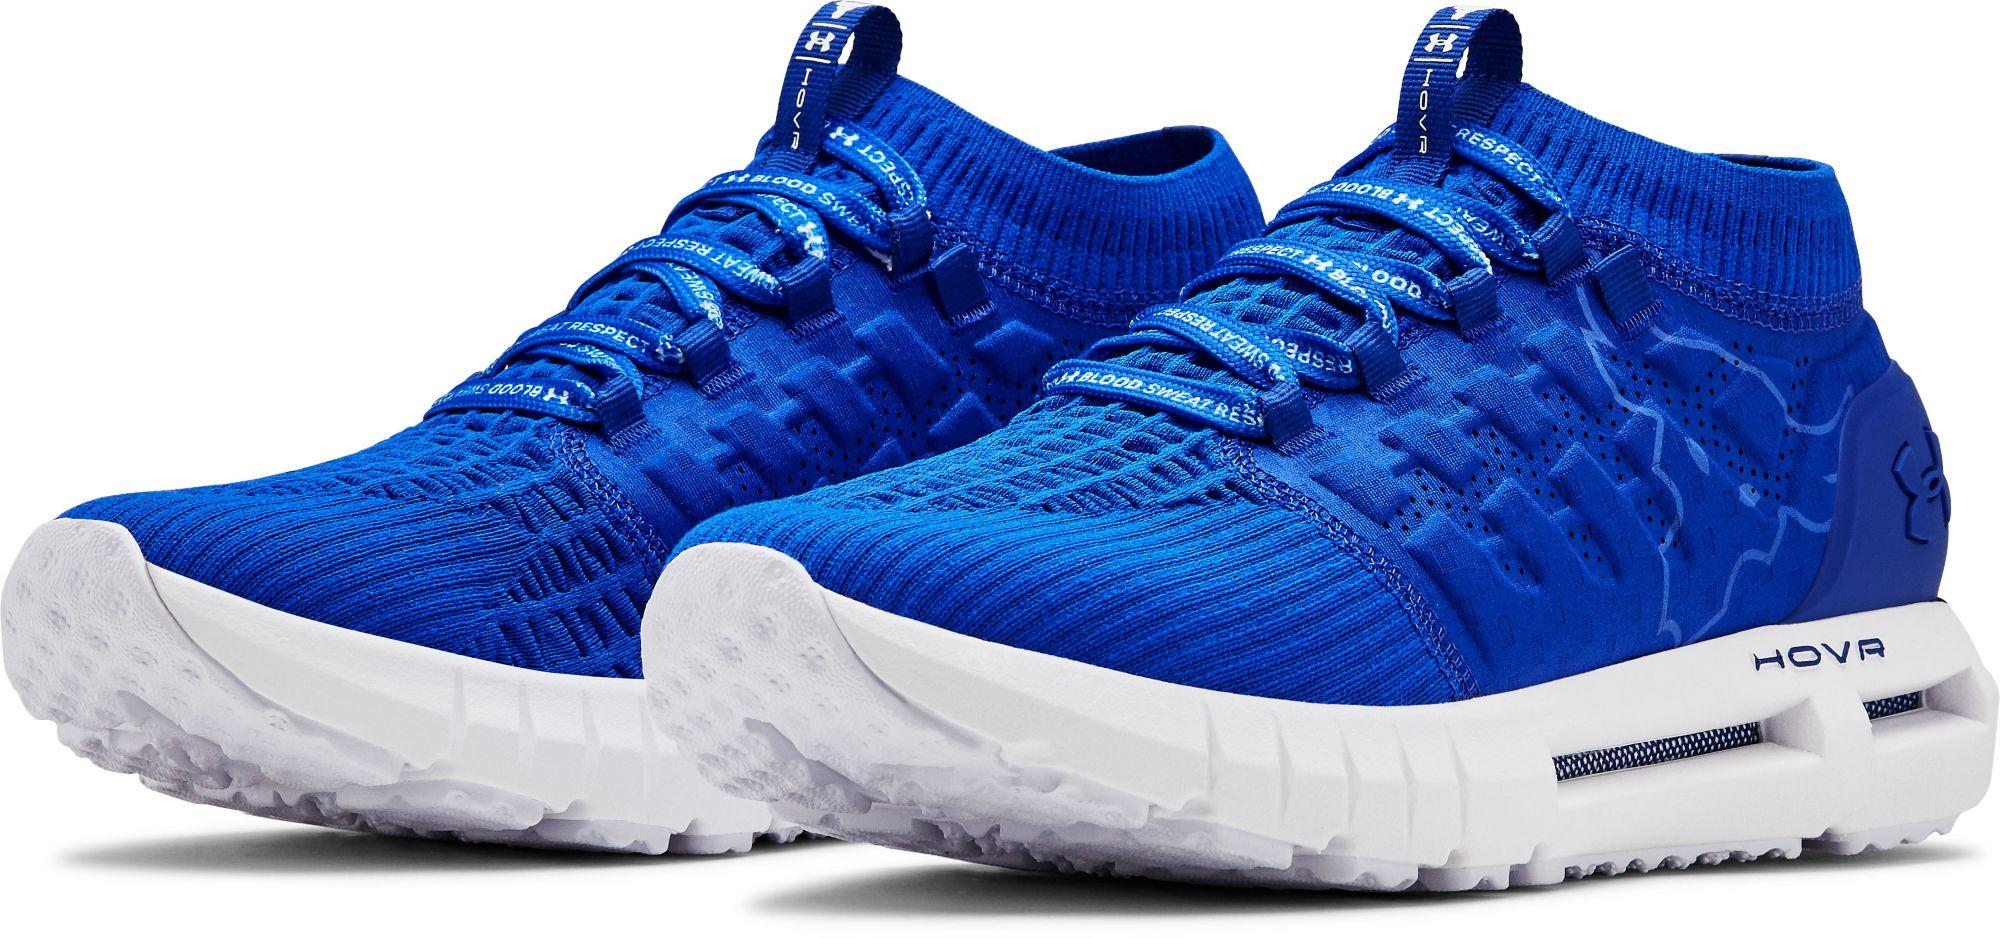 project rock bluetooth shoes